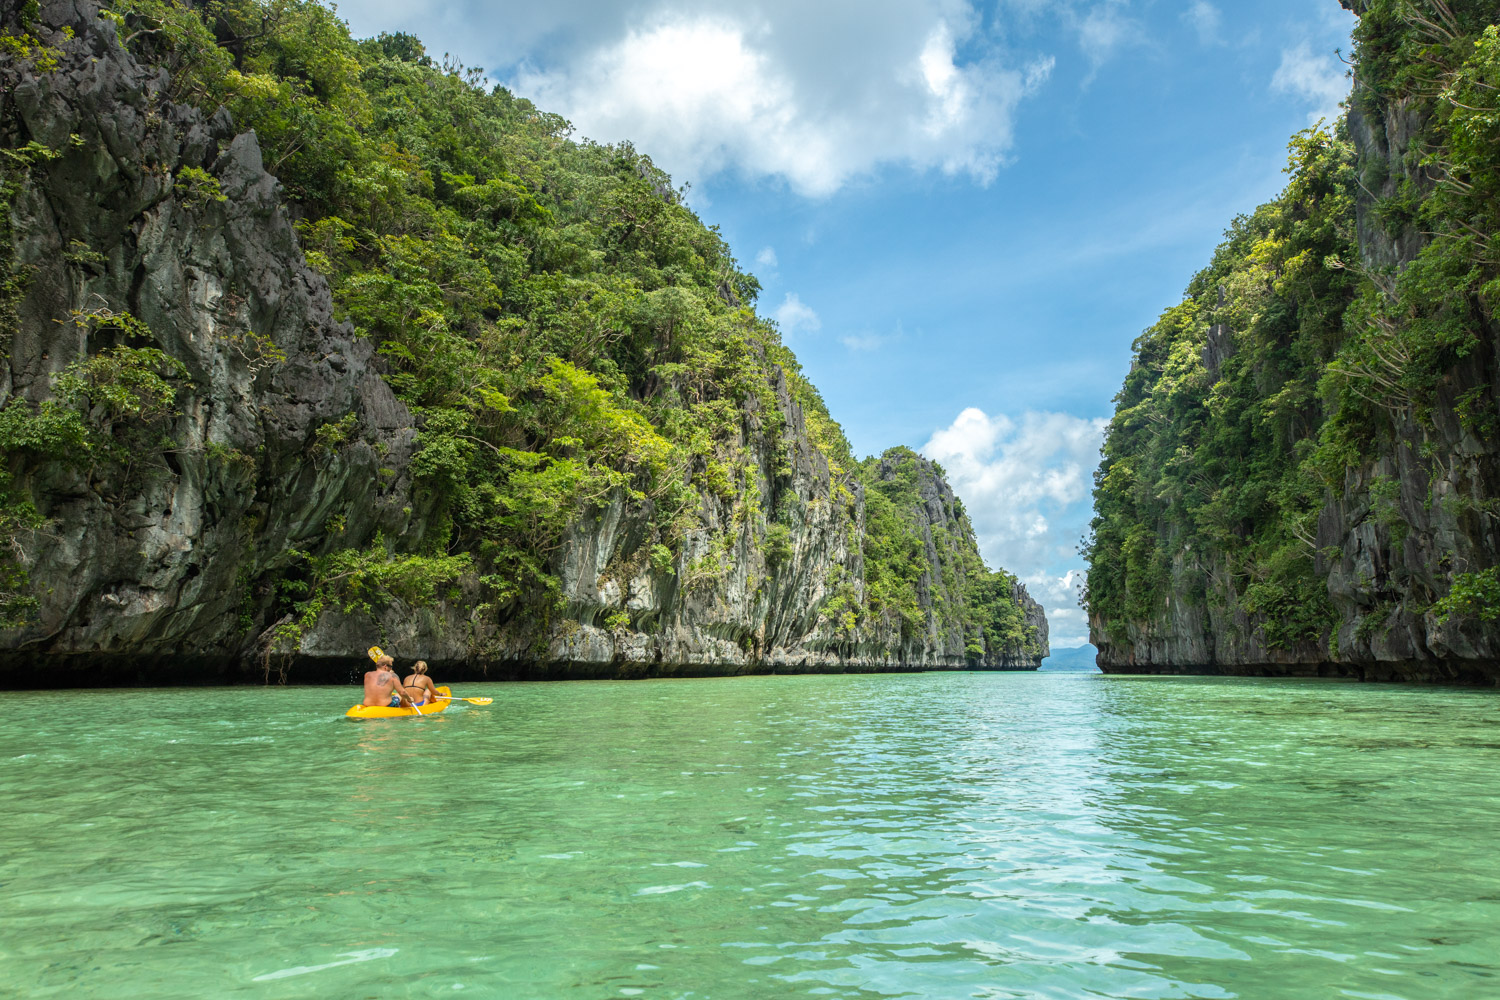 Image: Kayaking in the Philippines